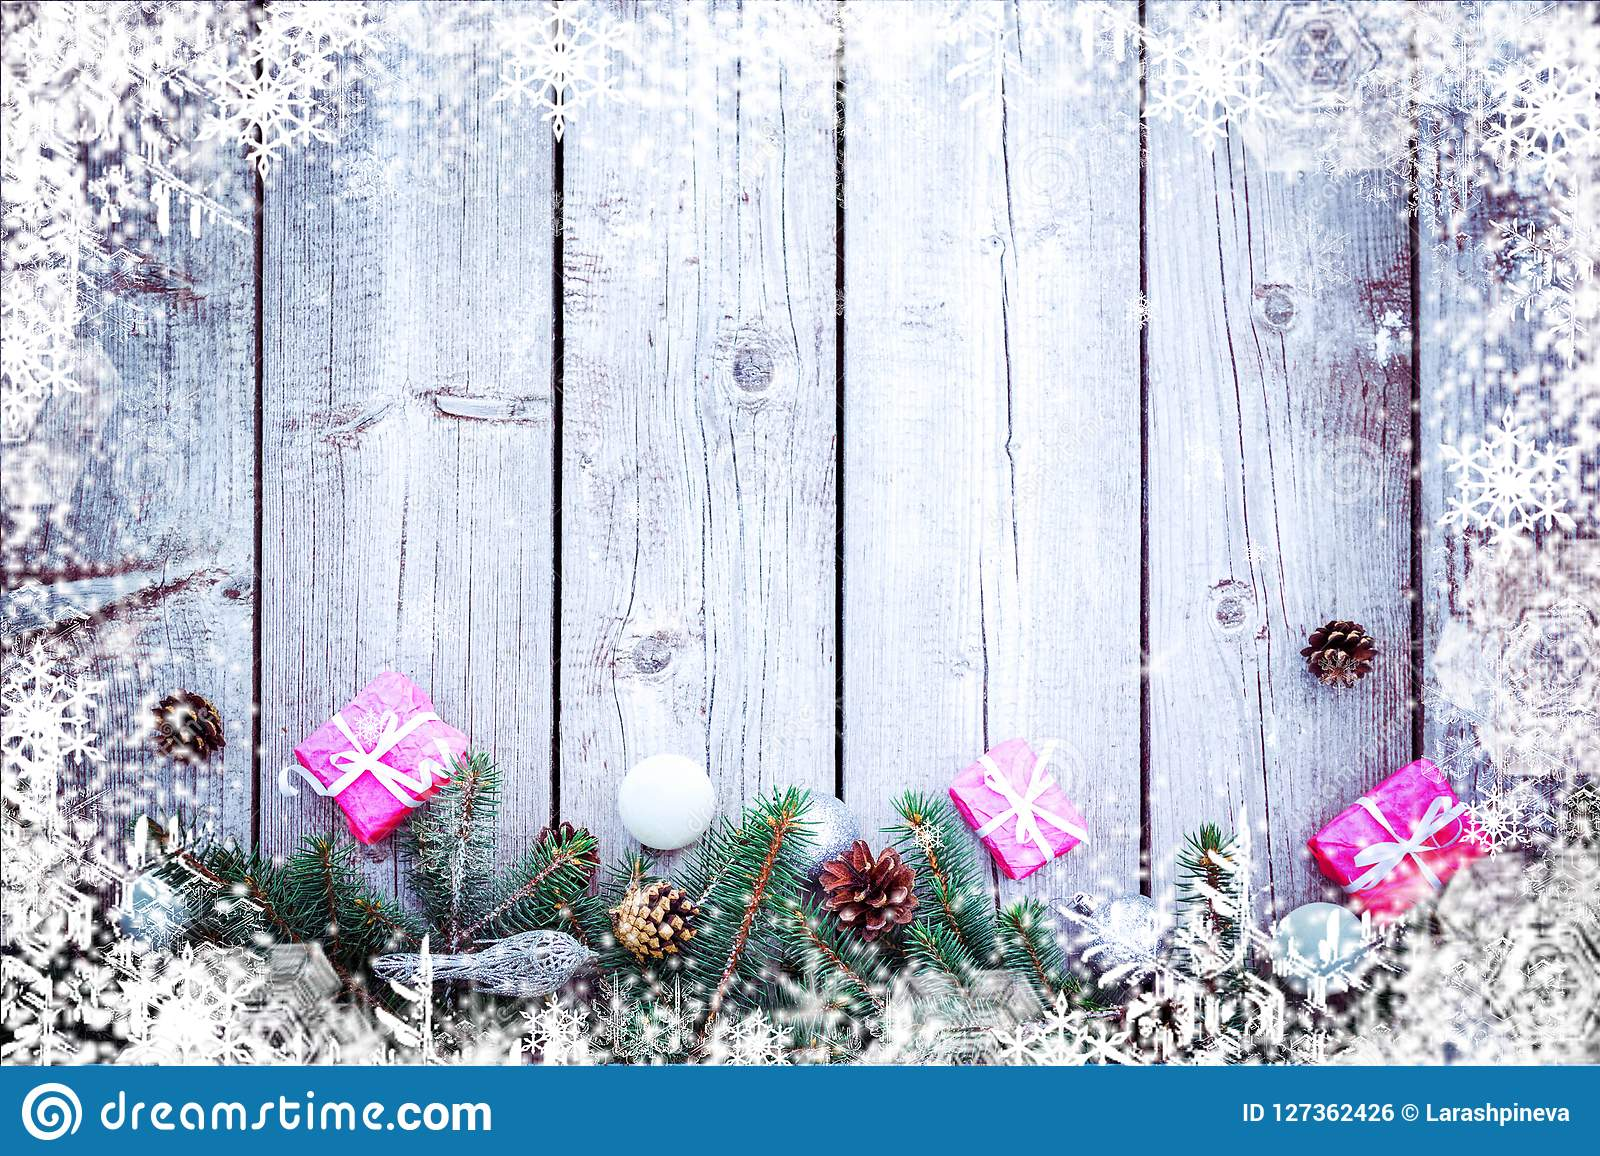 Christmas winter holiday background with gifts boxes with fir branches, pine cones, New Year balls on wooden table.